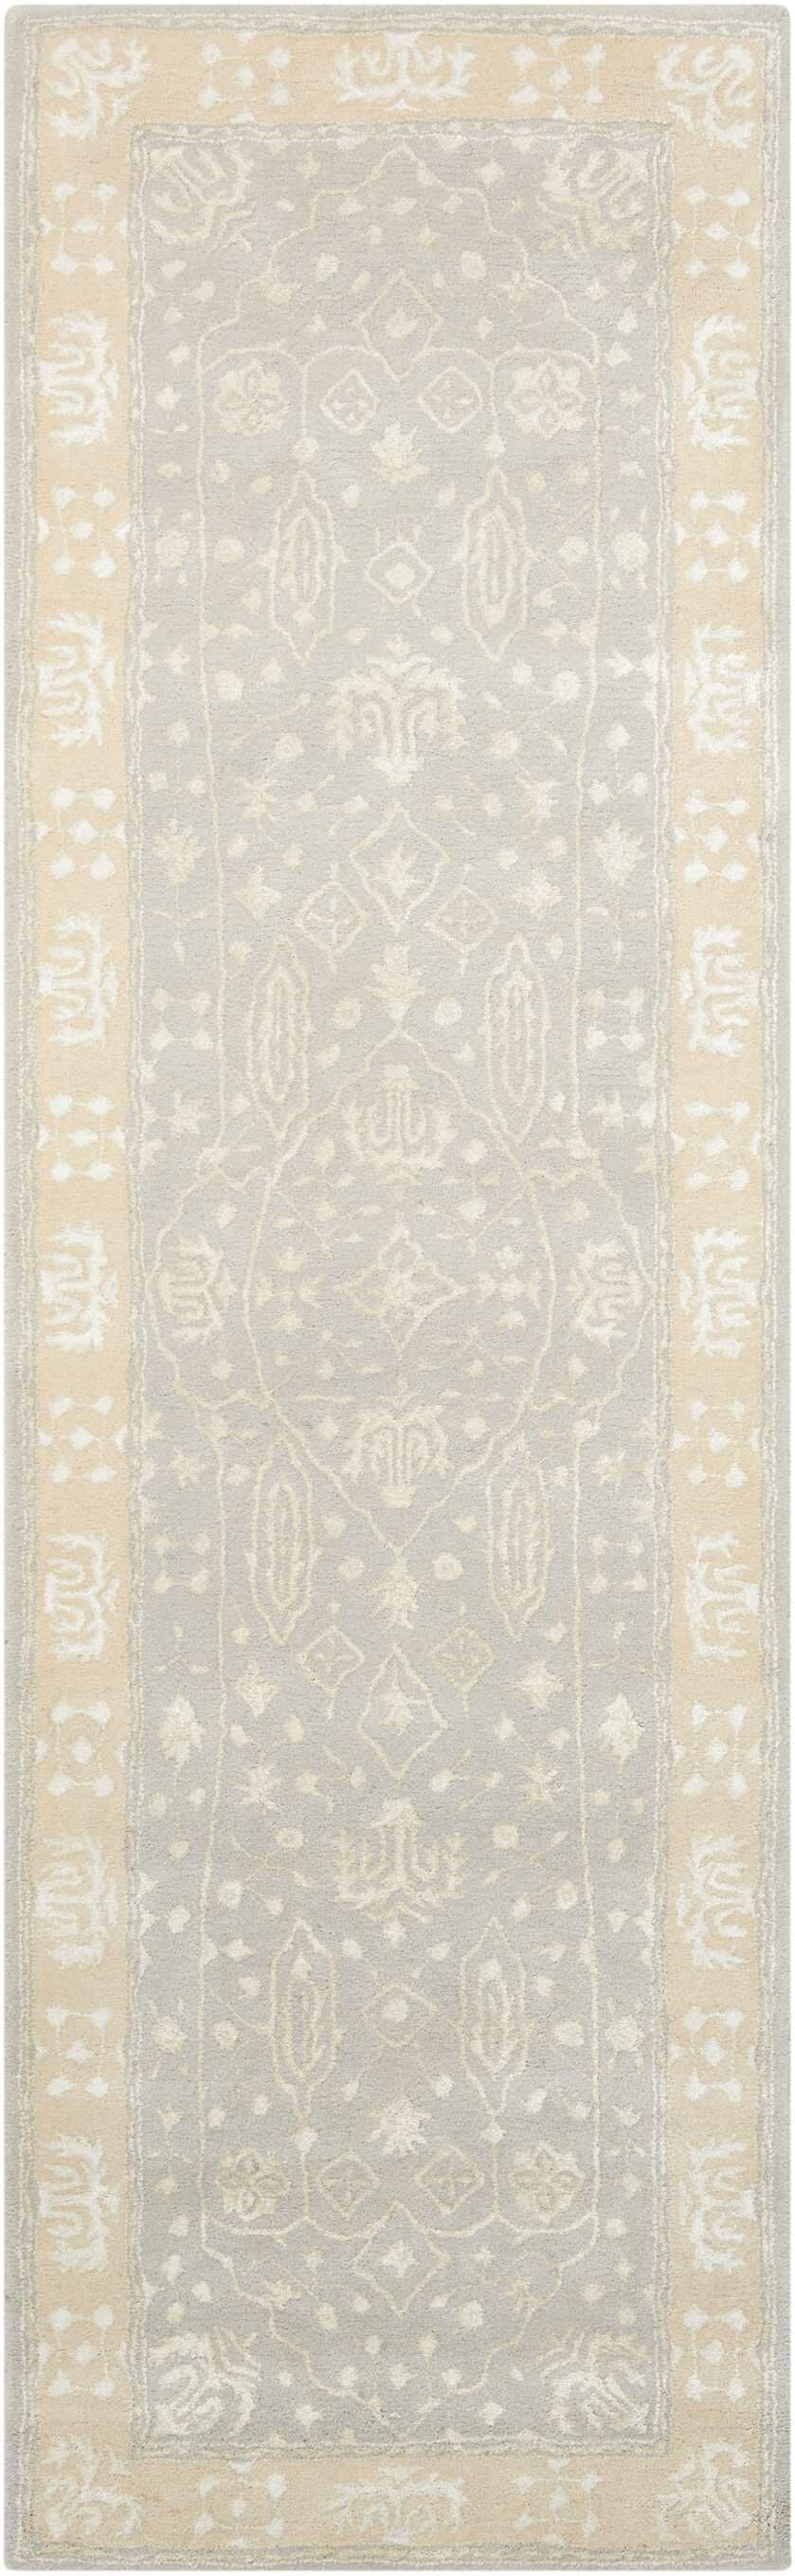 Veda Hand-Tufted Blue Mist Area Rug Rug Size: Runner 2'3